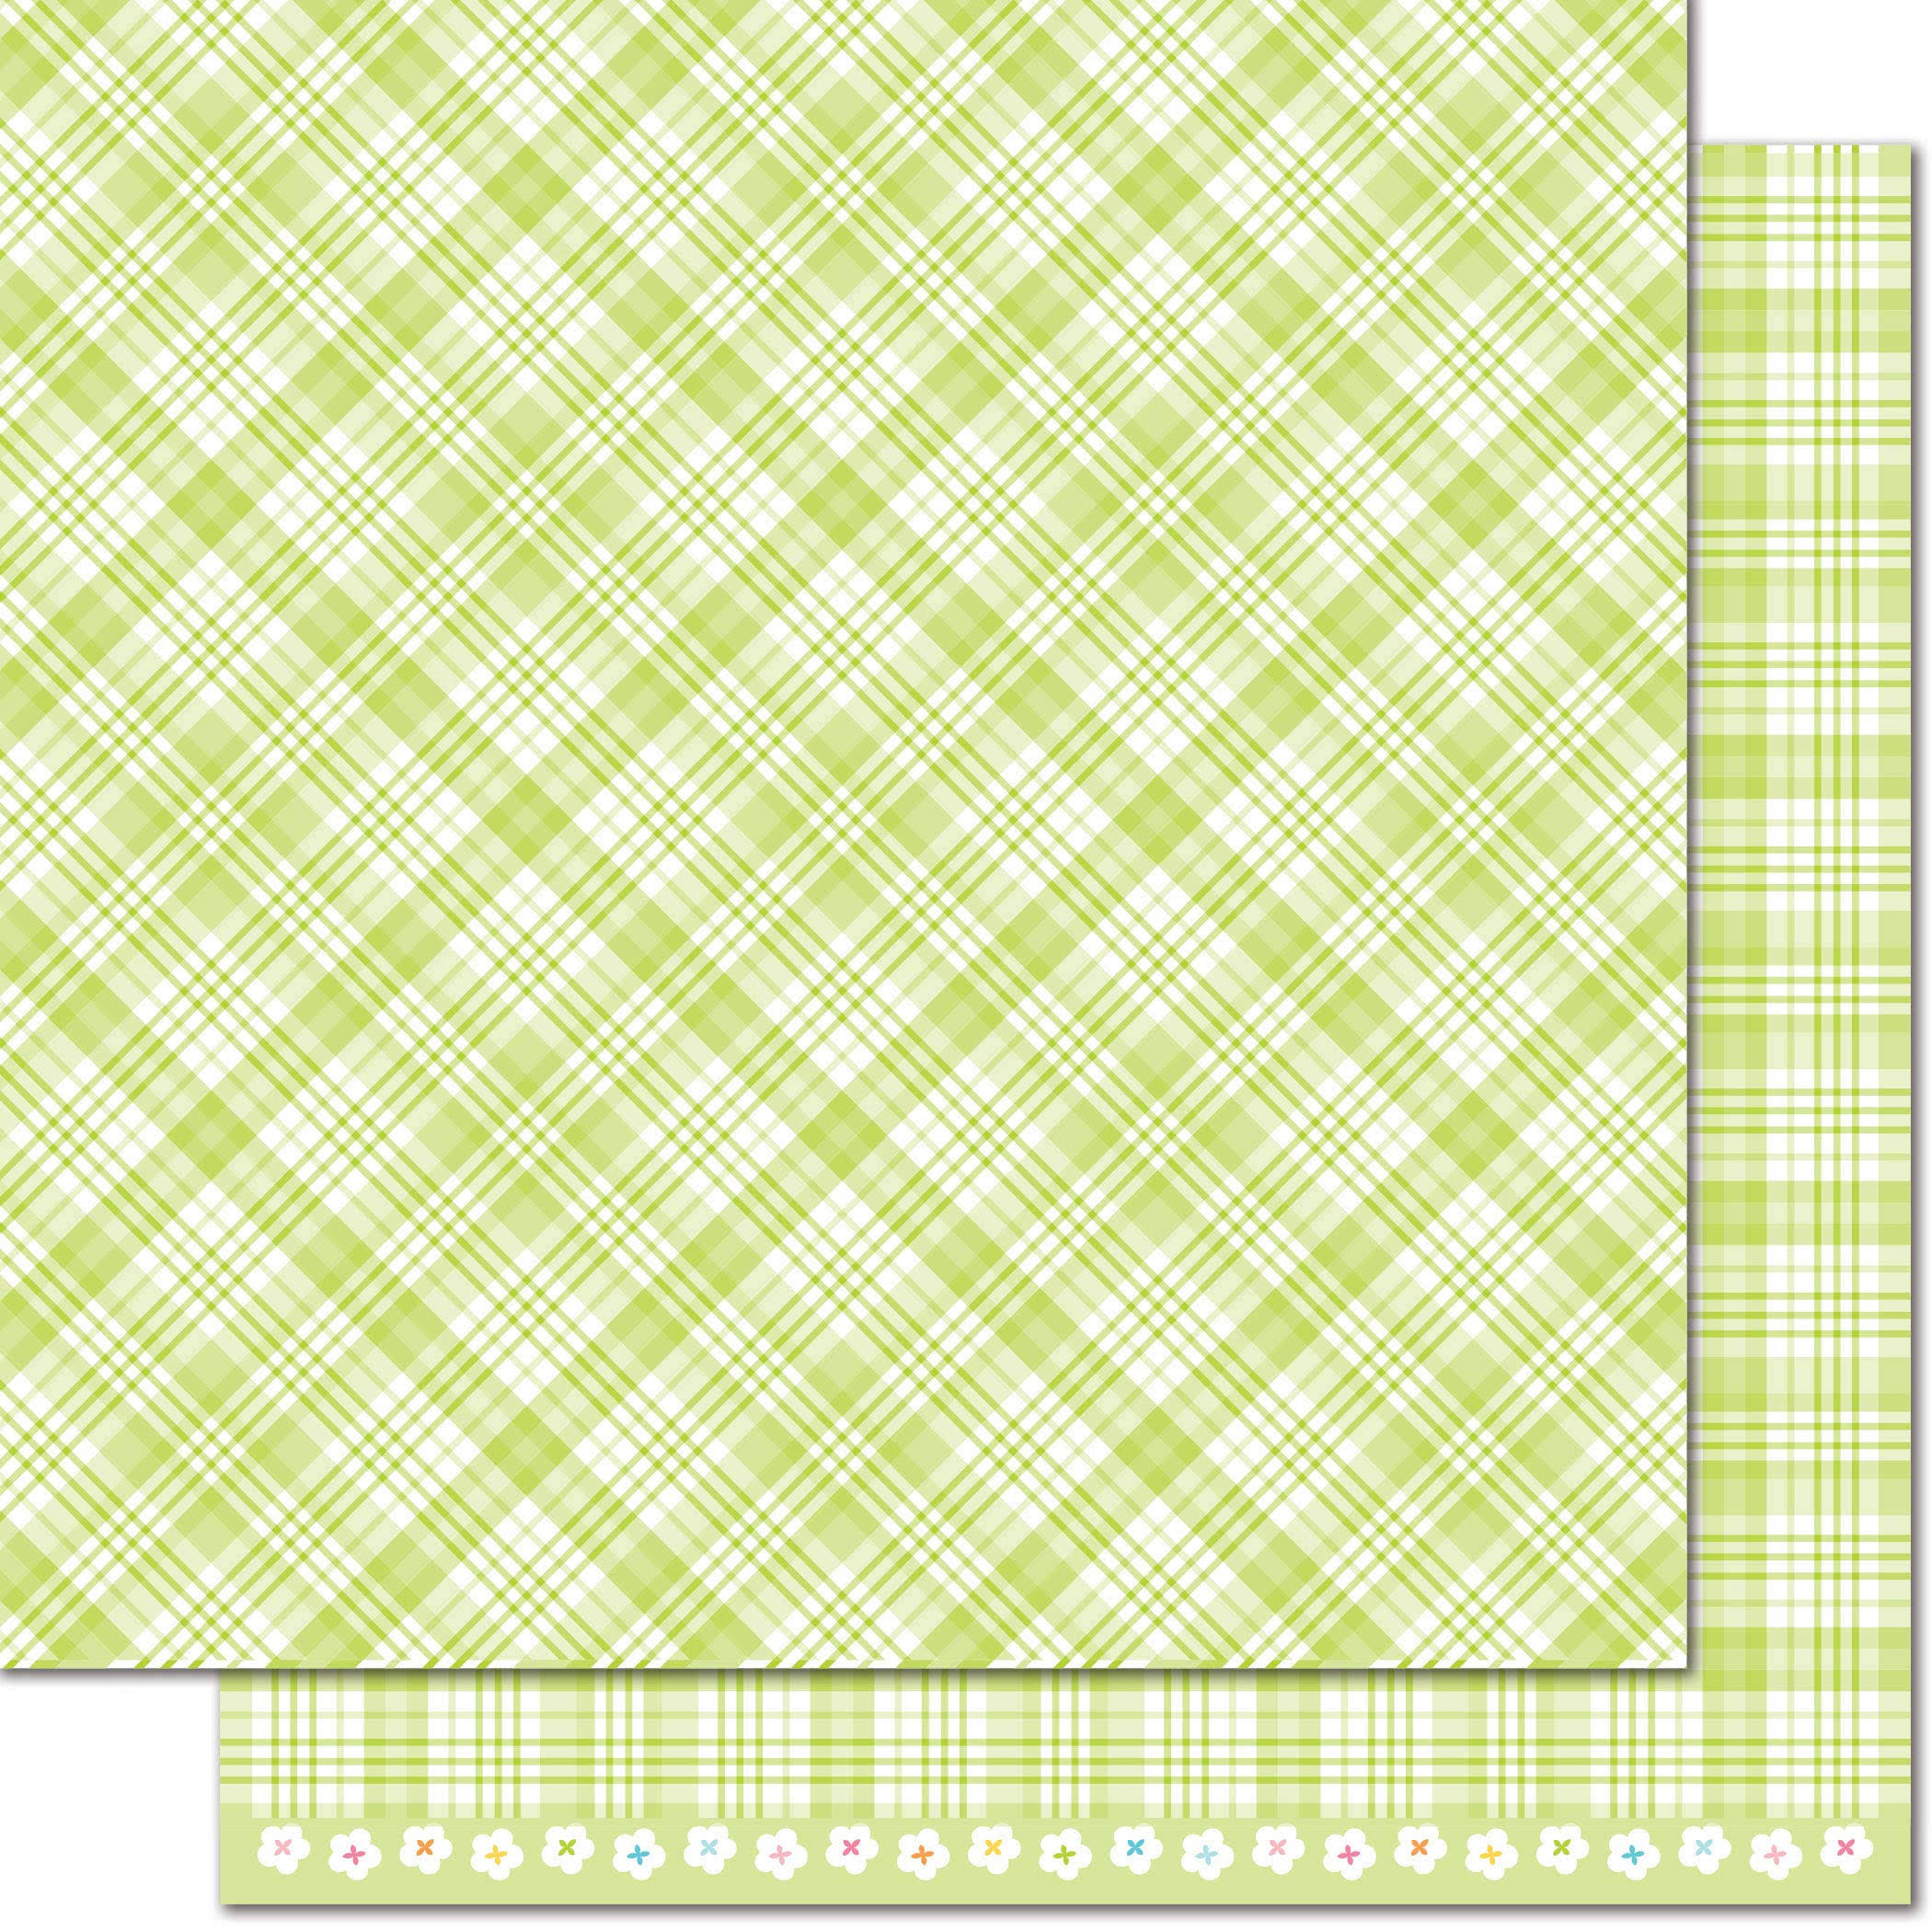 Lawn Fawn Perfectly Plaid Lily of The Valley Paper